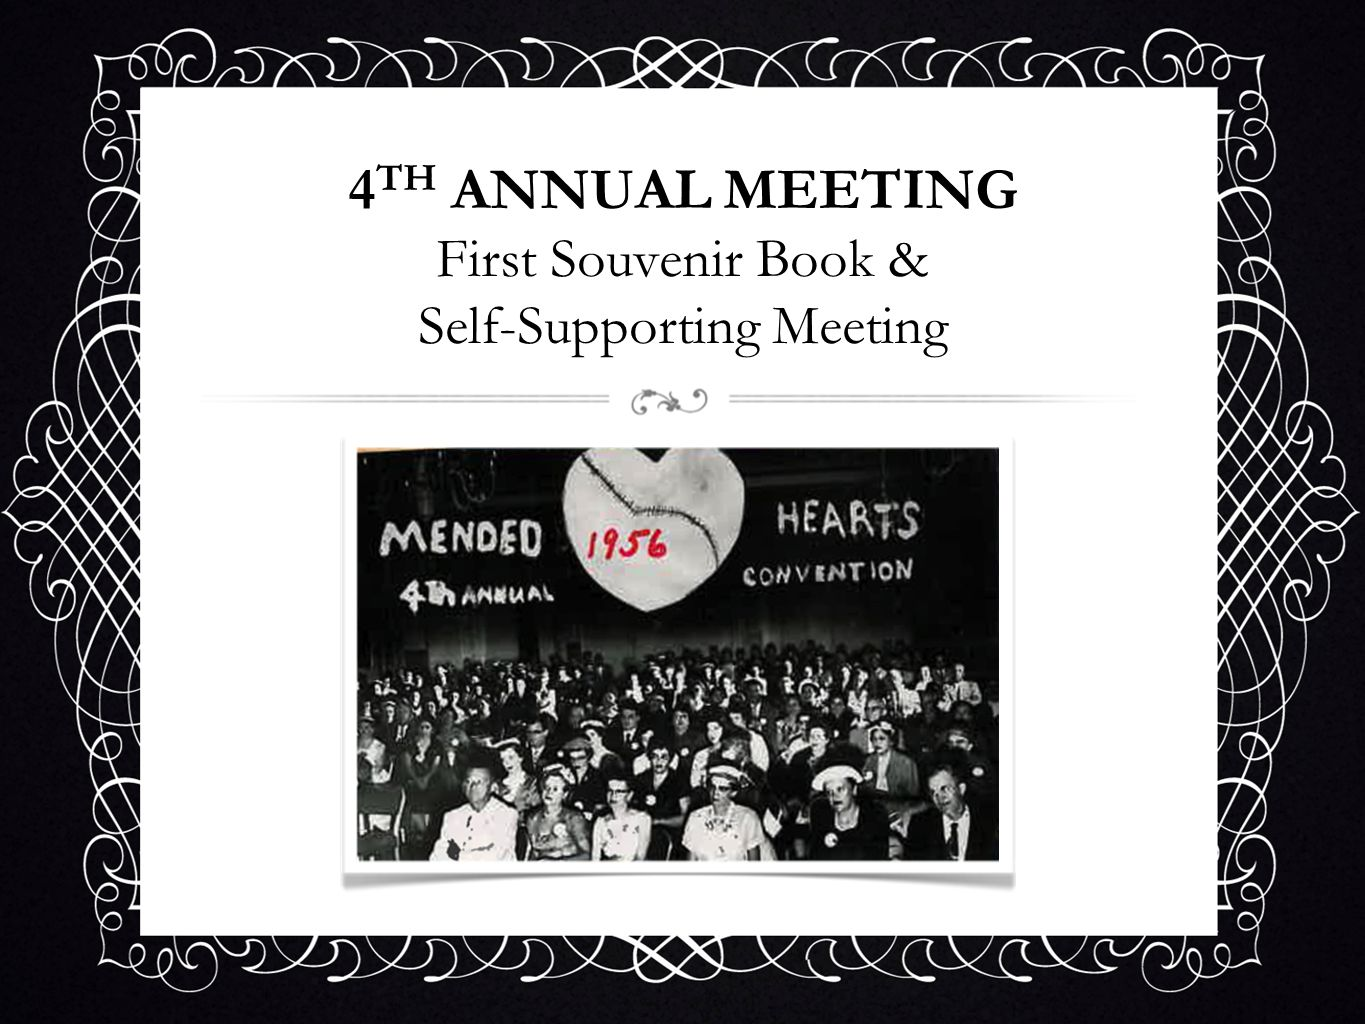 4TH ANNUAL MEETING First Souvenir Book & Self-Supporting Meeting